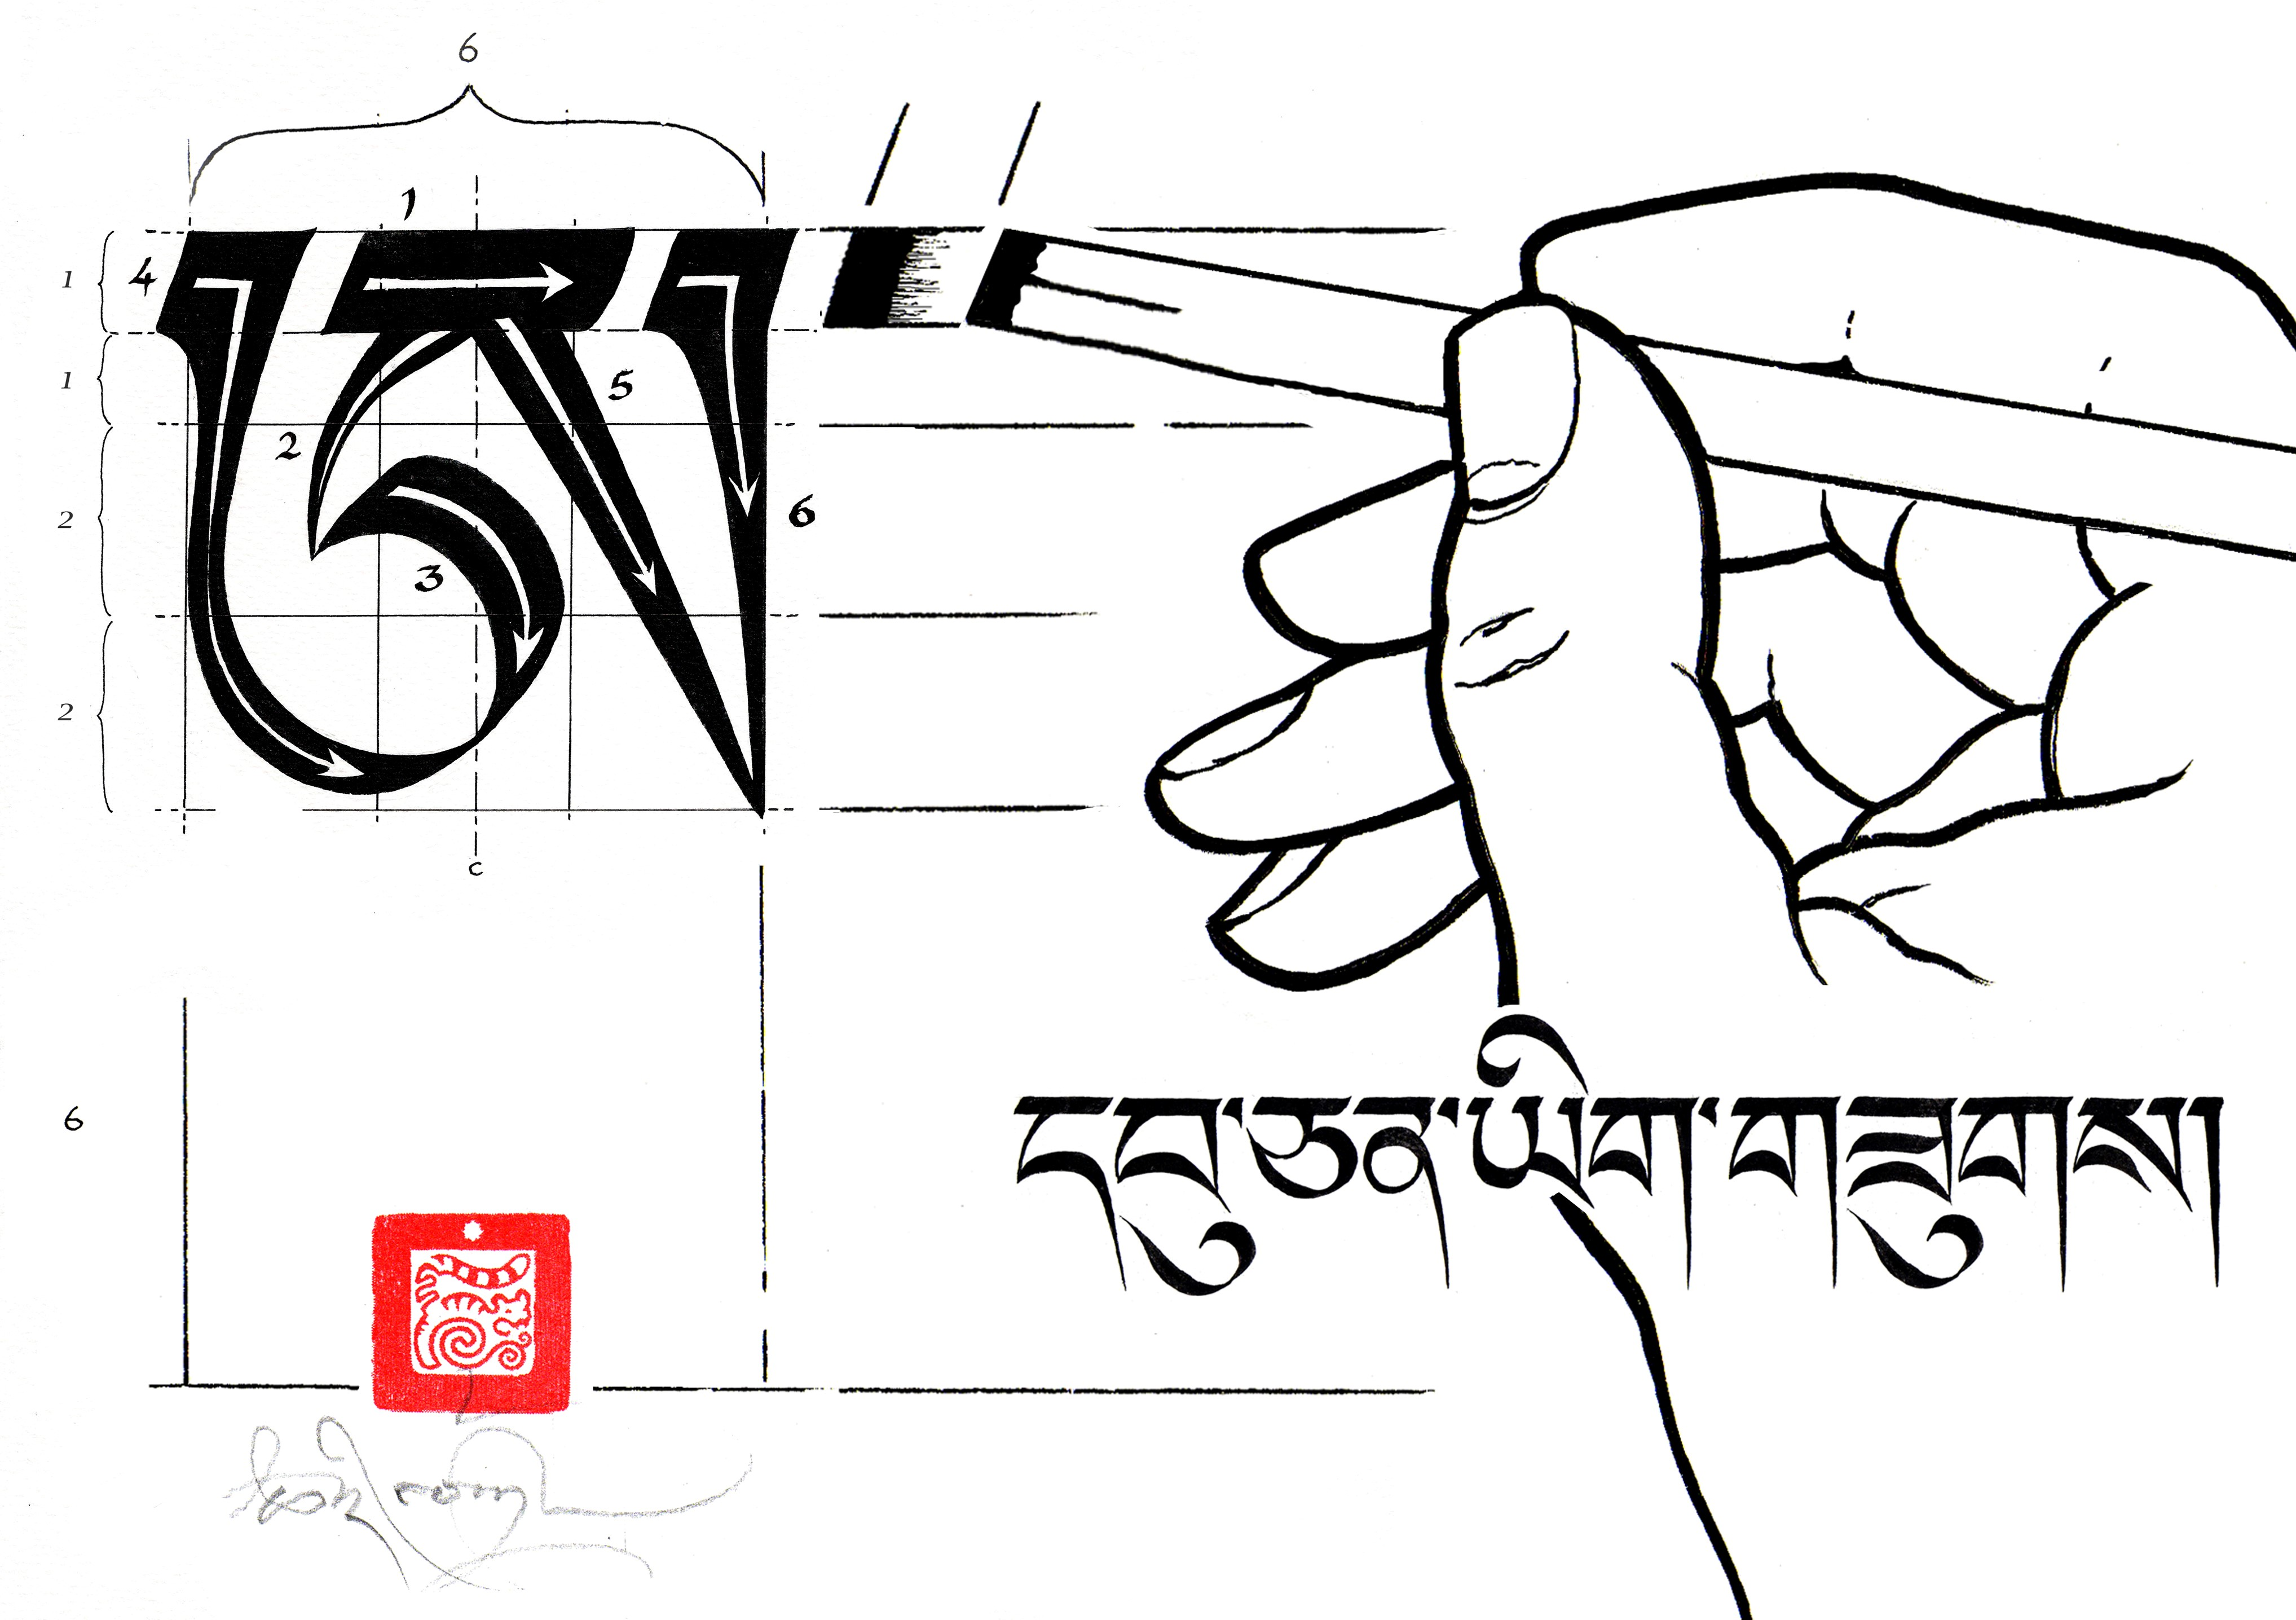 Tibetan Calligraphy: drawing of a hand painting letters